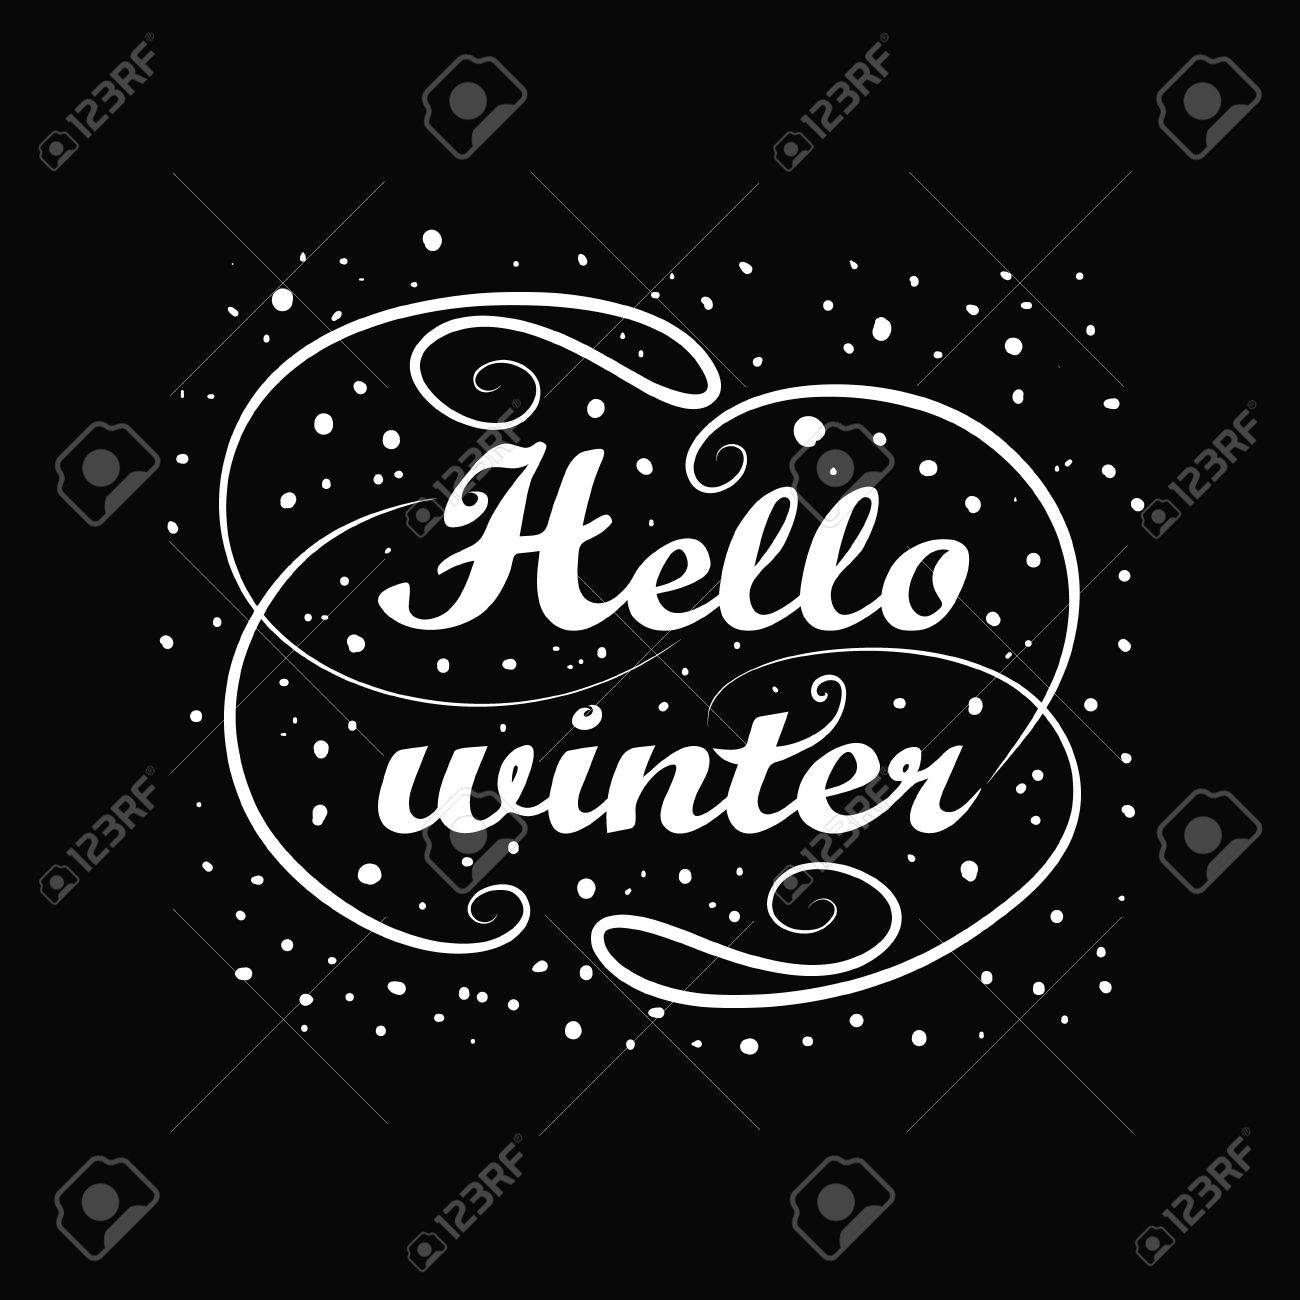 Incroyable Vector Illustration Of Hello Winter Holiday Greeting Card Design. Black  Chalkboard With White Handwriting Message